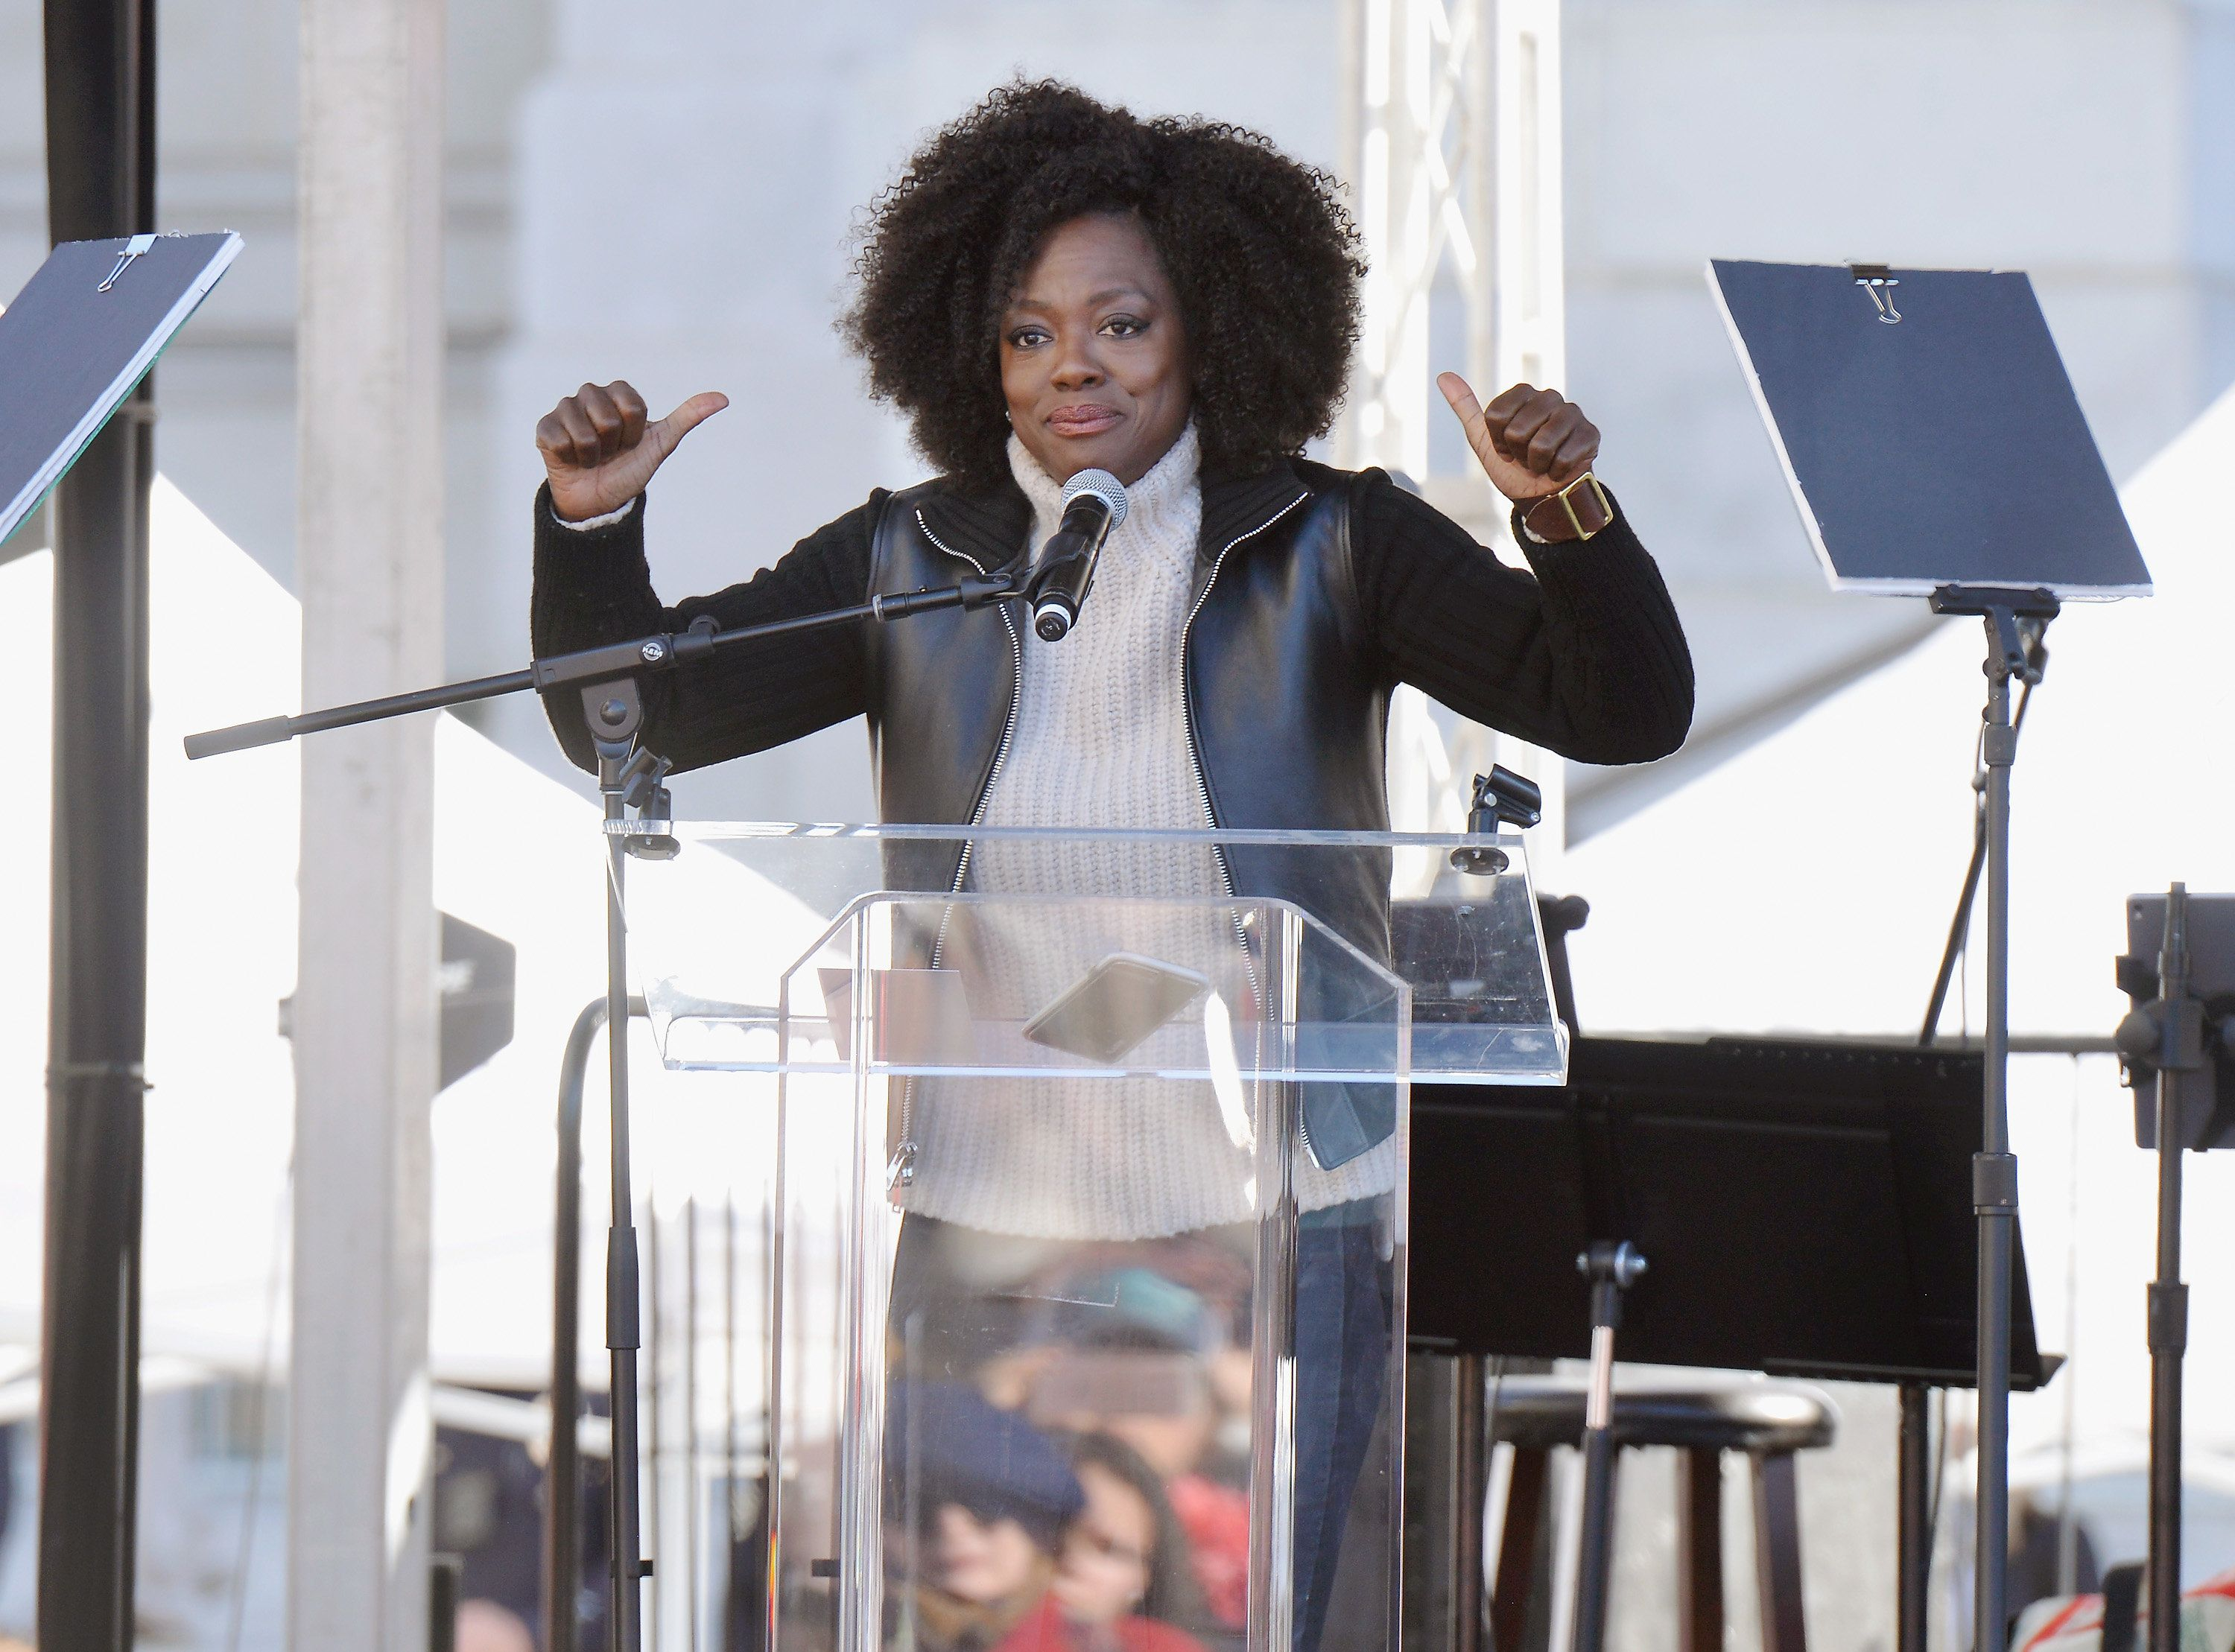 If You Only Watch One Thing Today, Make It Viola Davis's Women's March